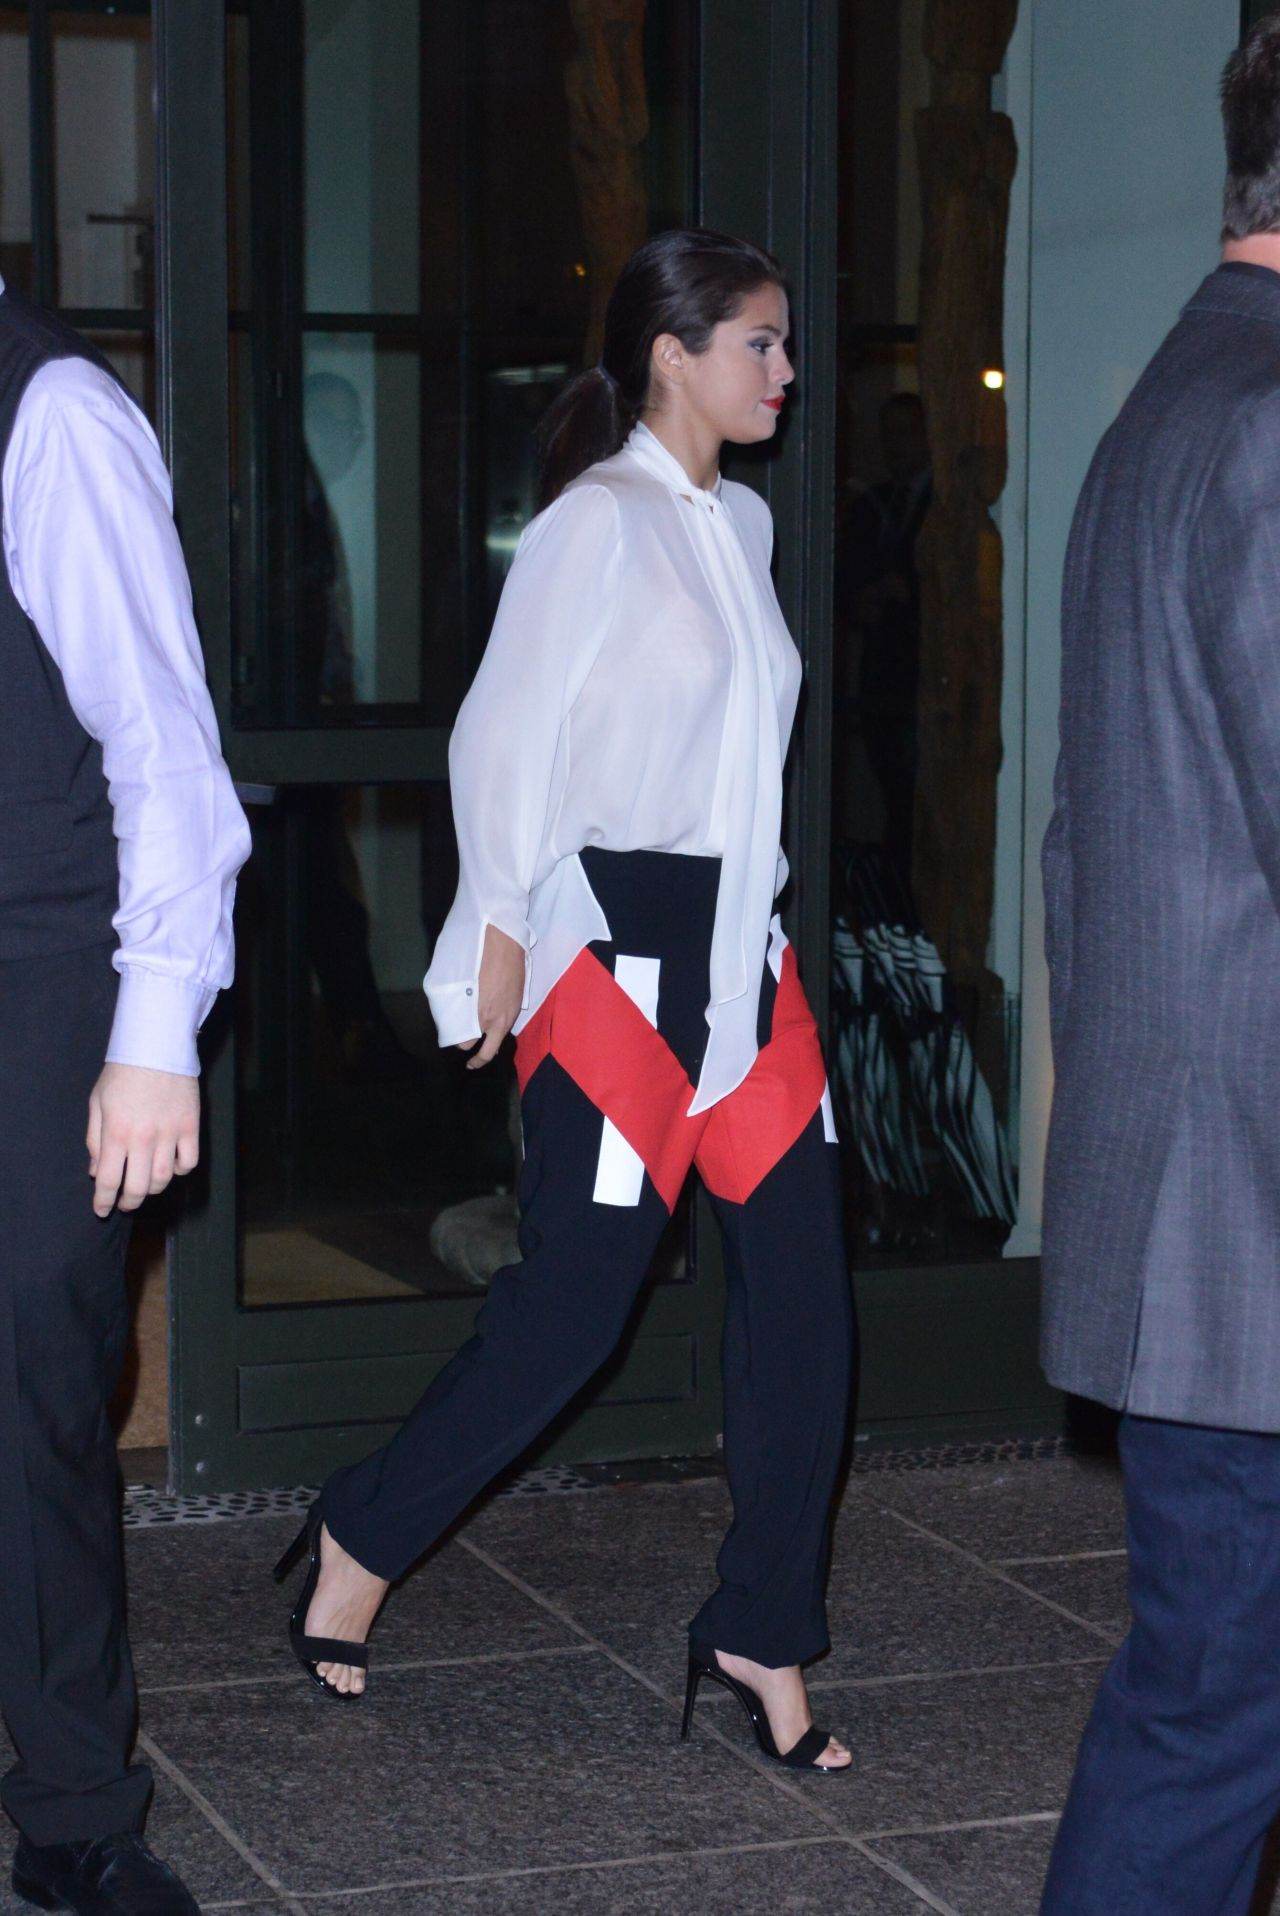 selena-gomez-outside-her-hotel-in-new-york-city-august-2015_2